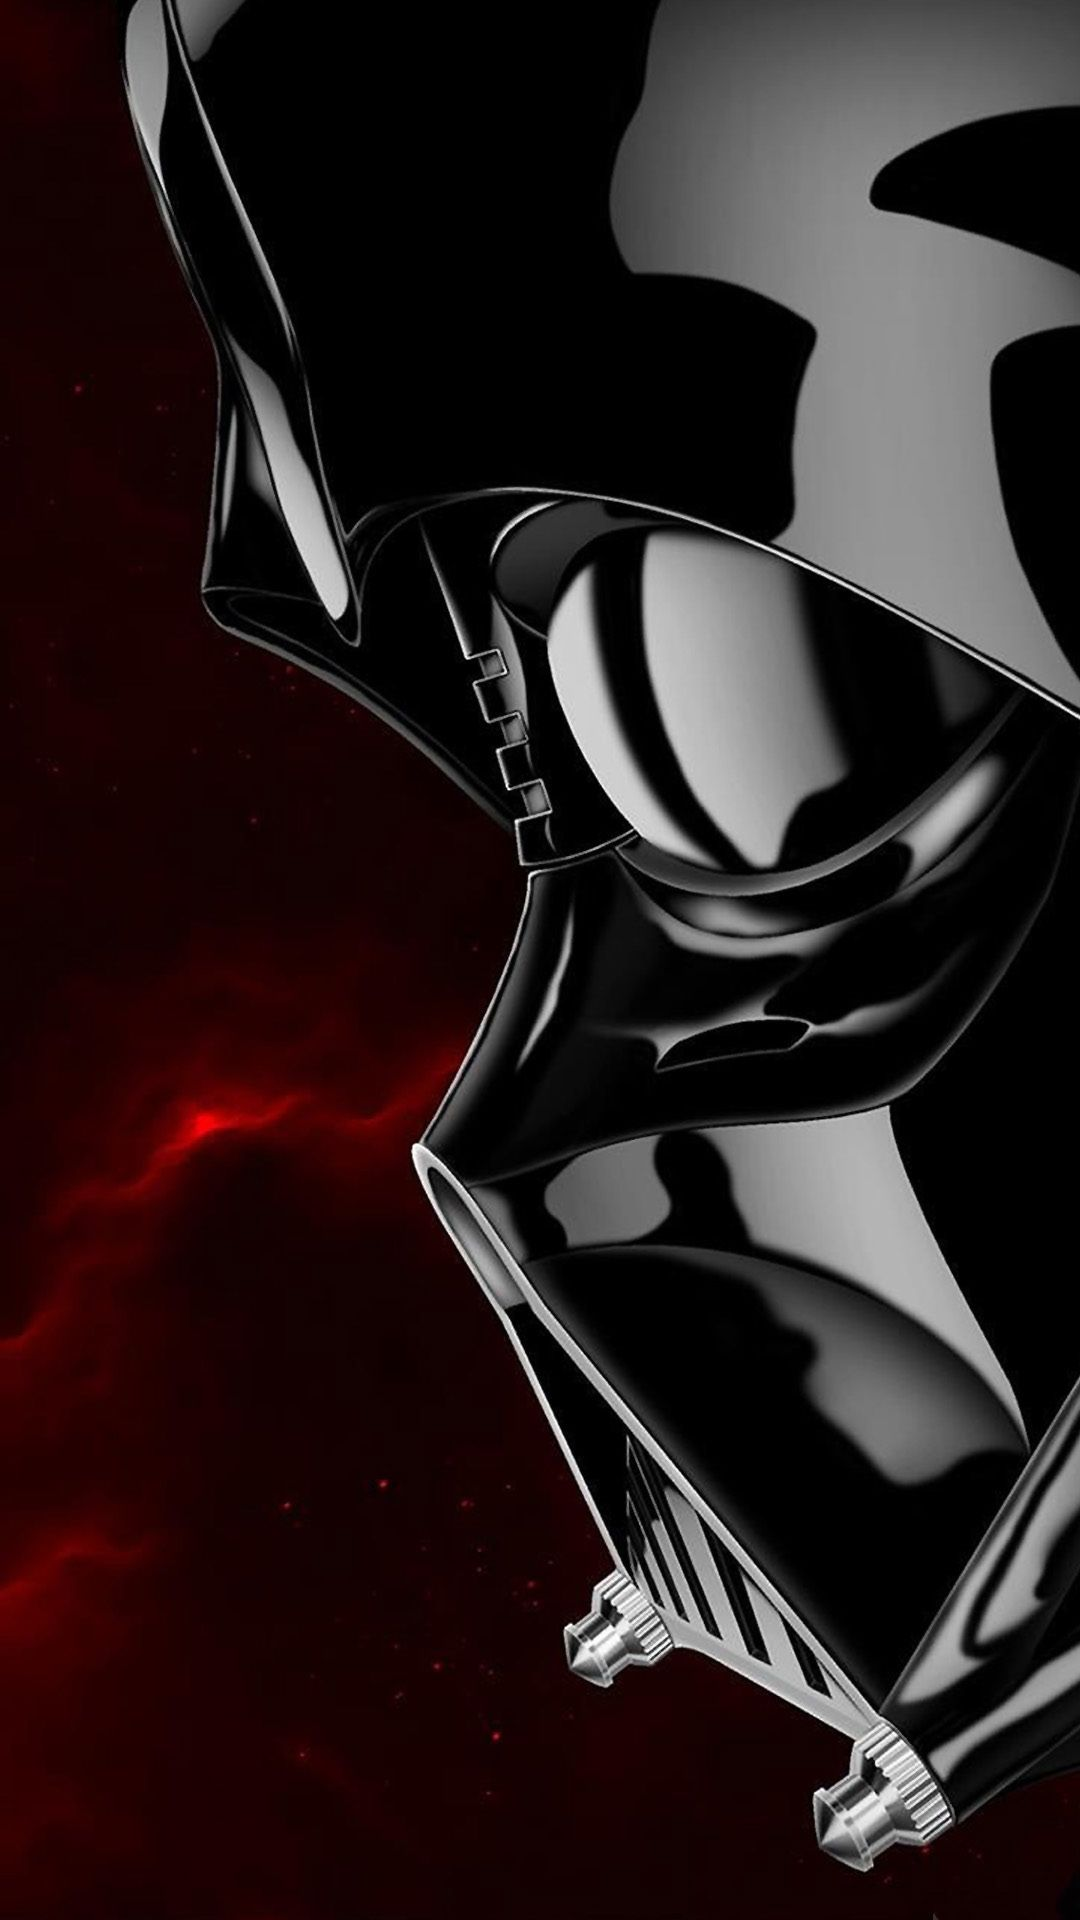 Star Wars Cell Phone Wallpapers Top Free Star Wars Cell Phone